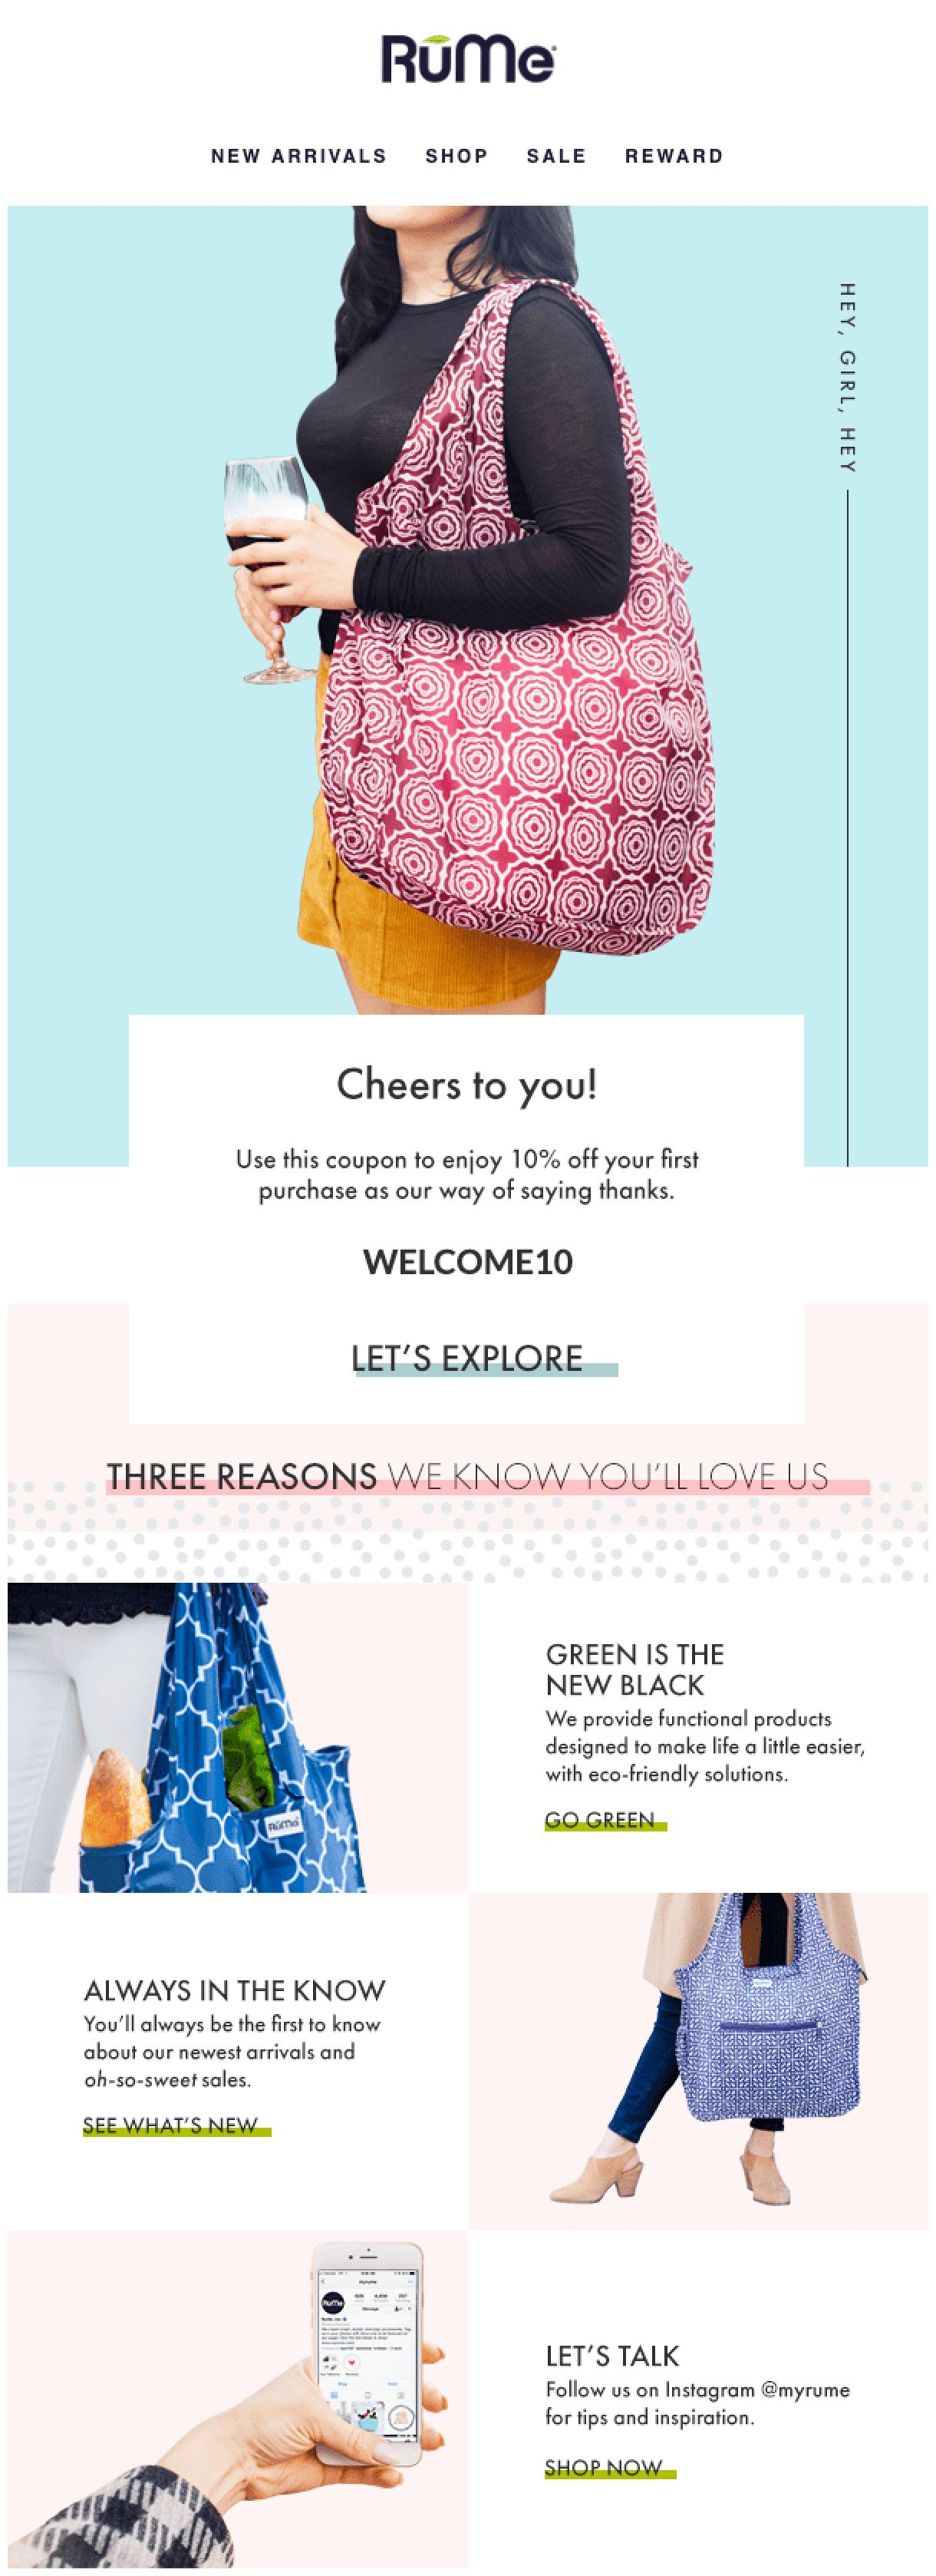 RuMe e-commerce welcome email example